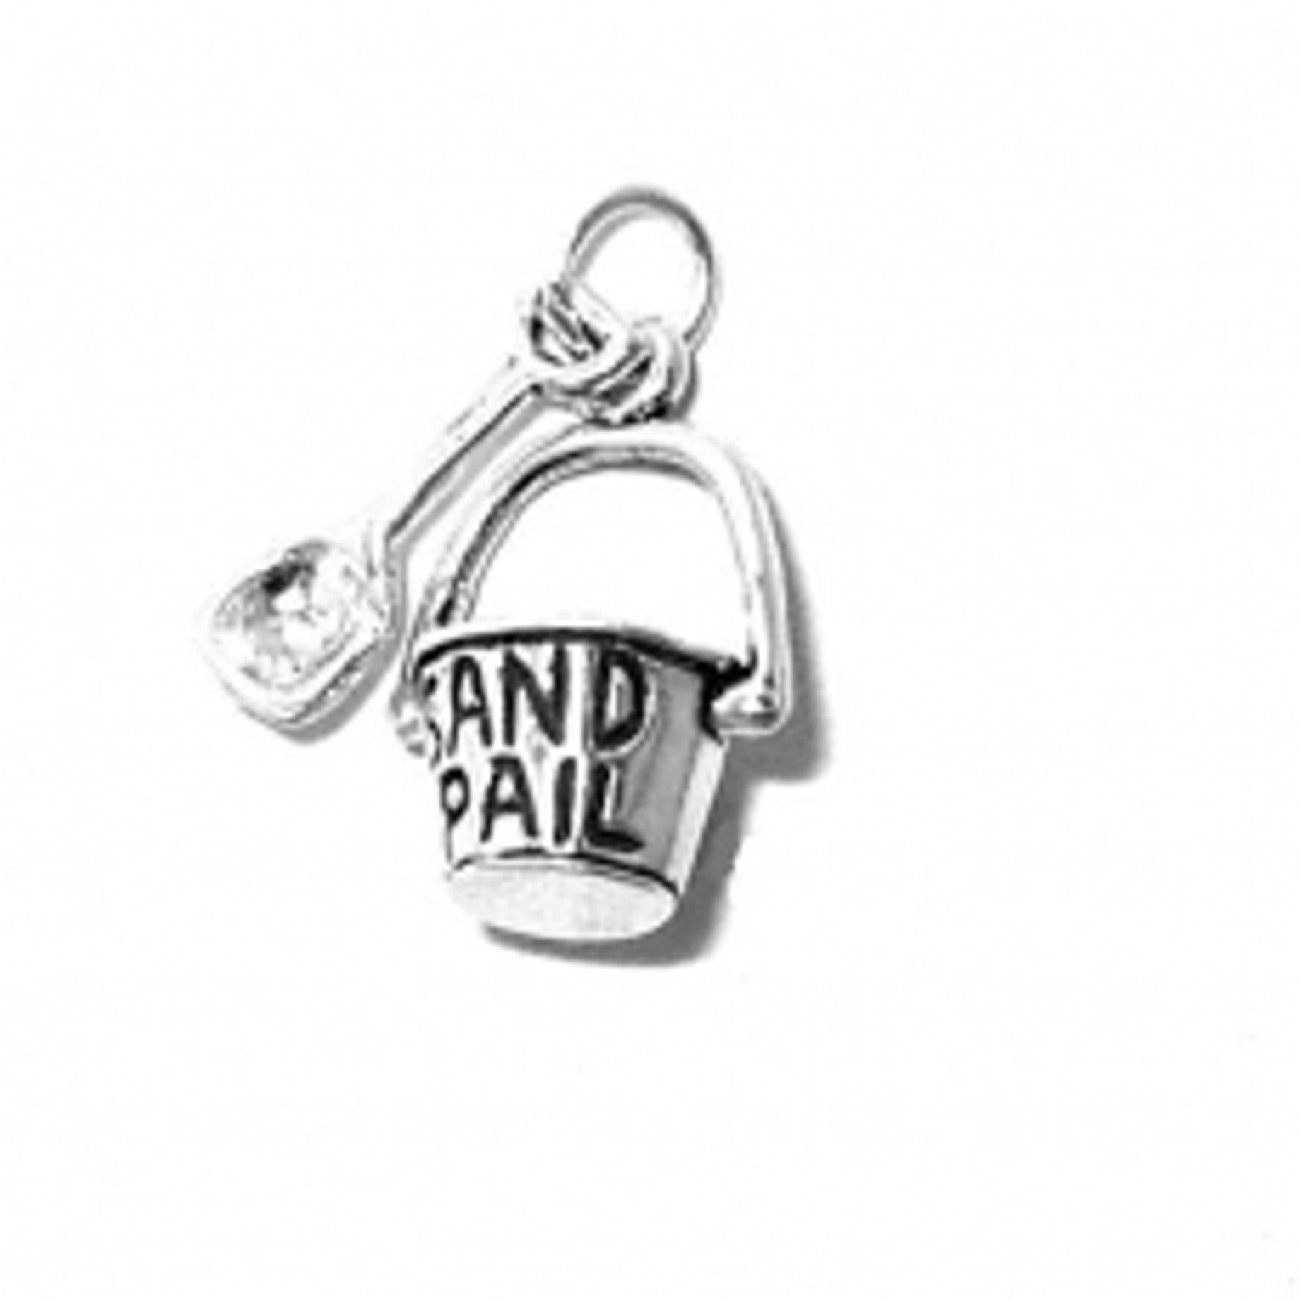 Sterling Silver 7 4.5mm Charm Bracelet With Attached 3D Sand Pail And Shovel Charm